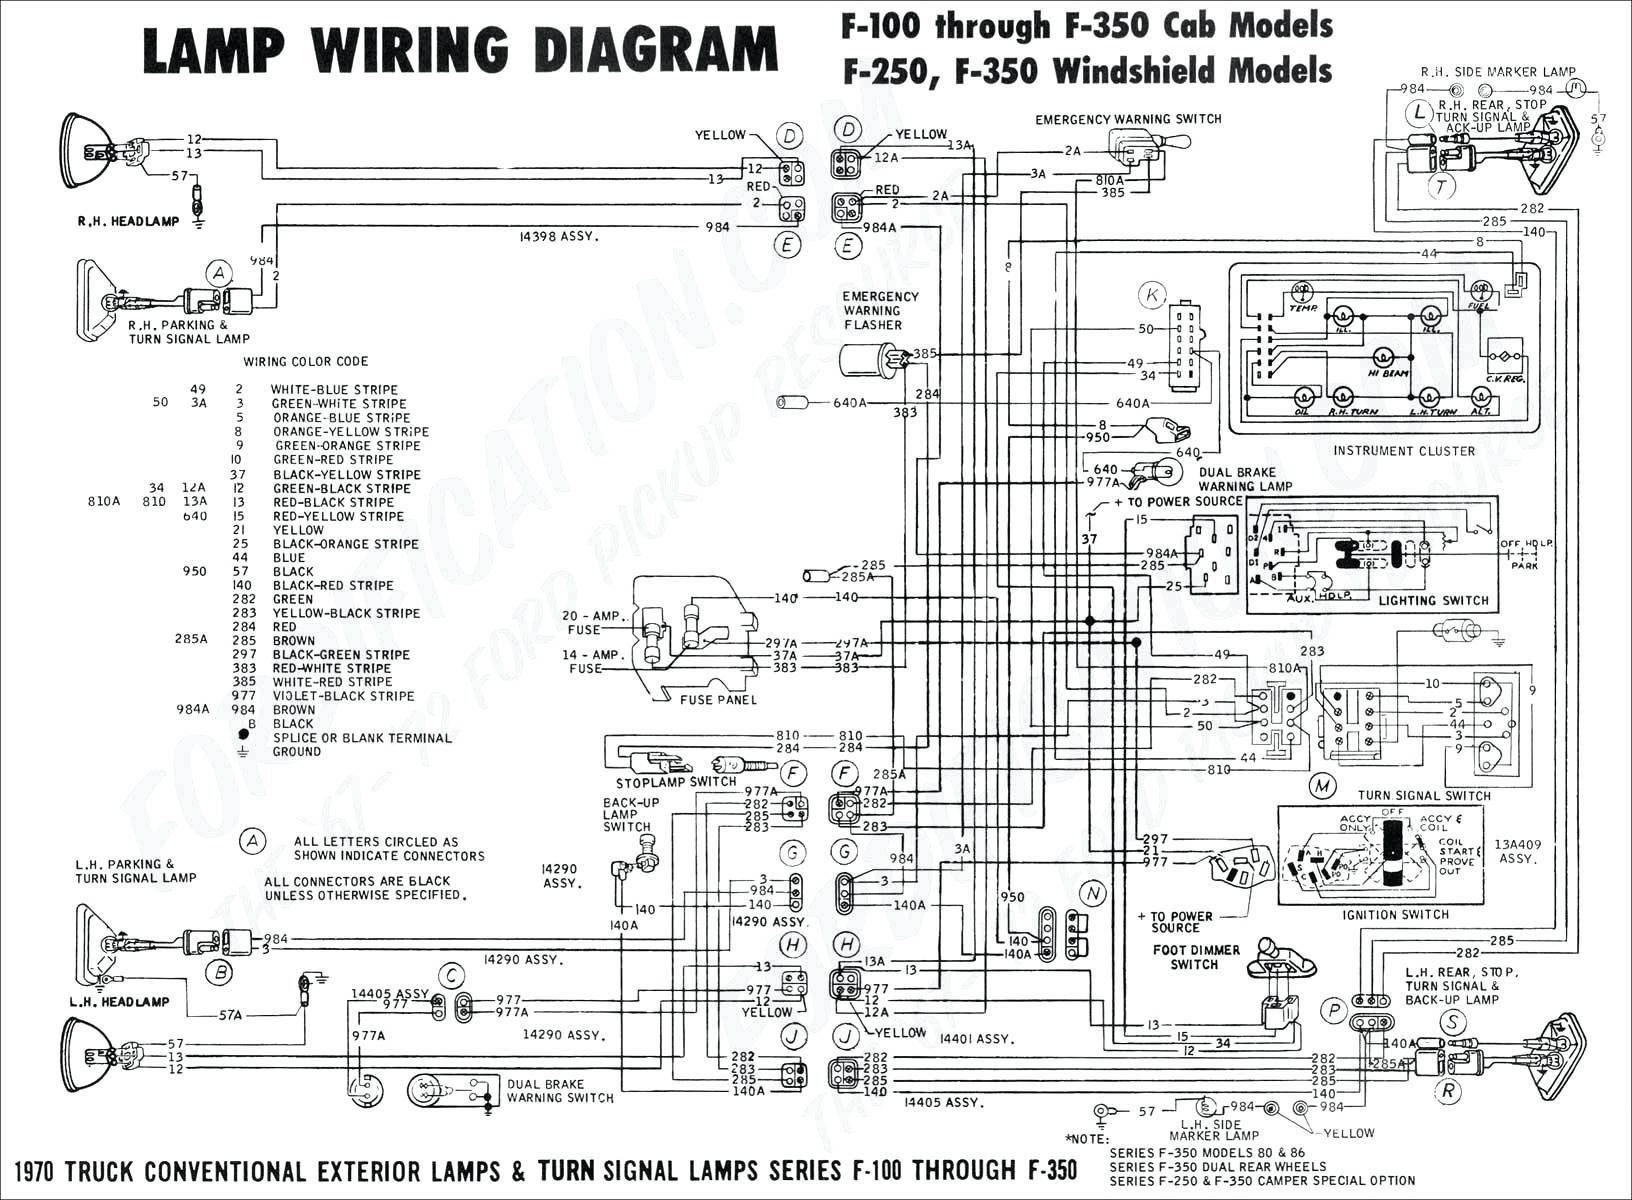 4 Way Switch Diagram